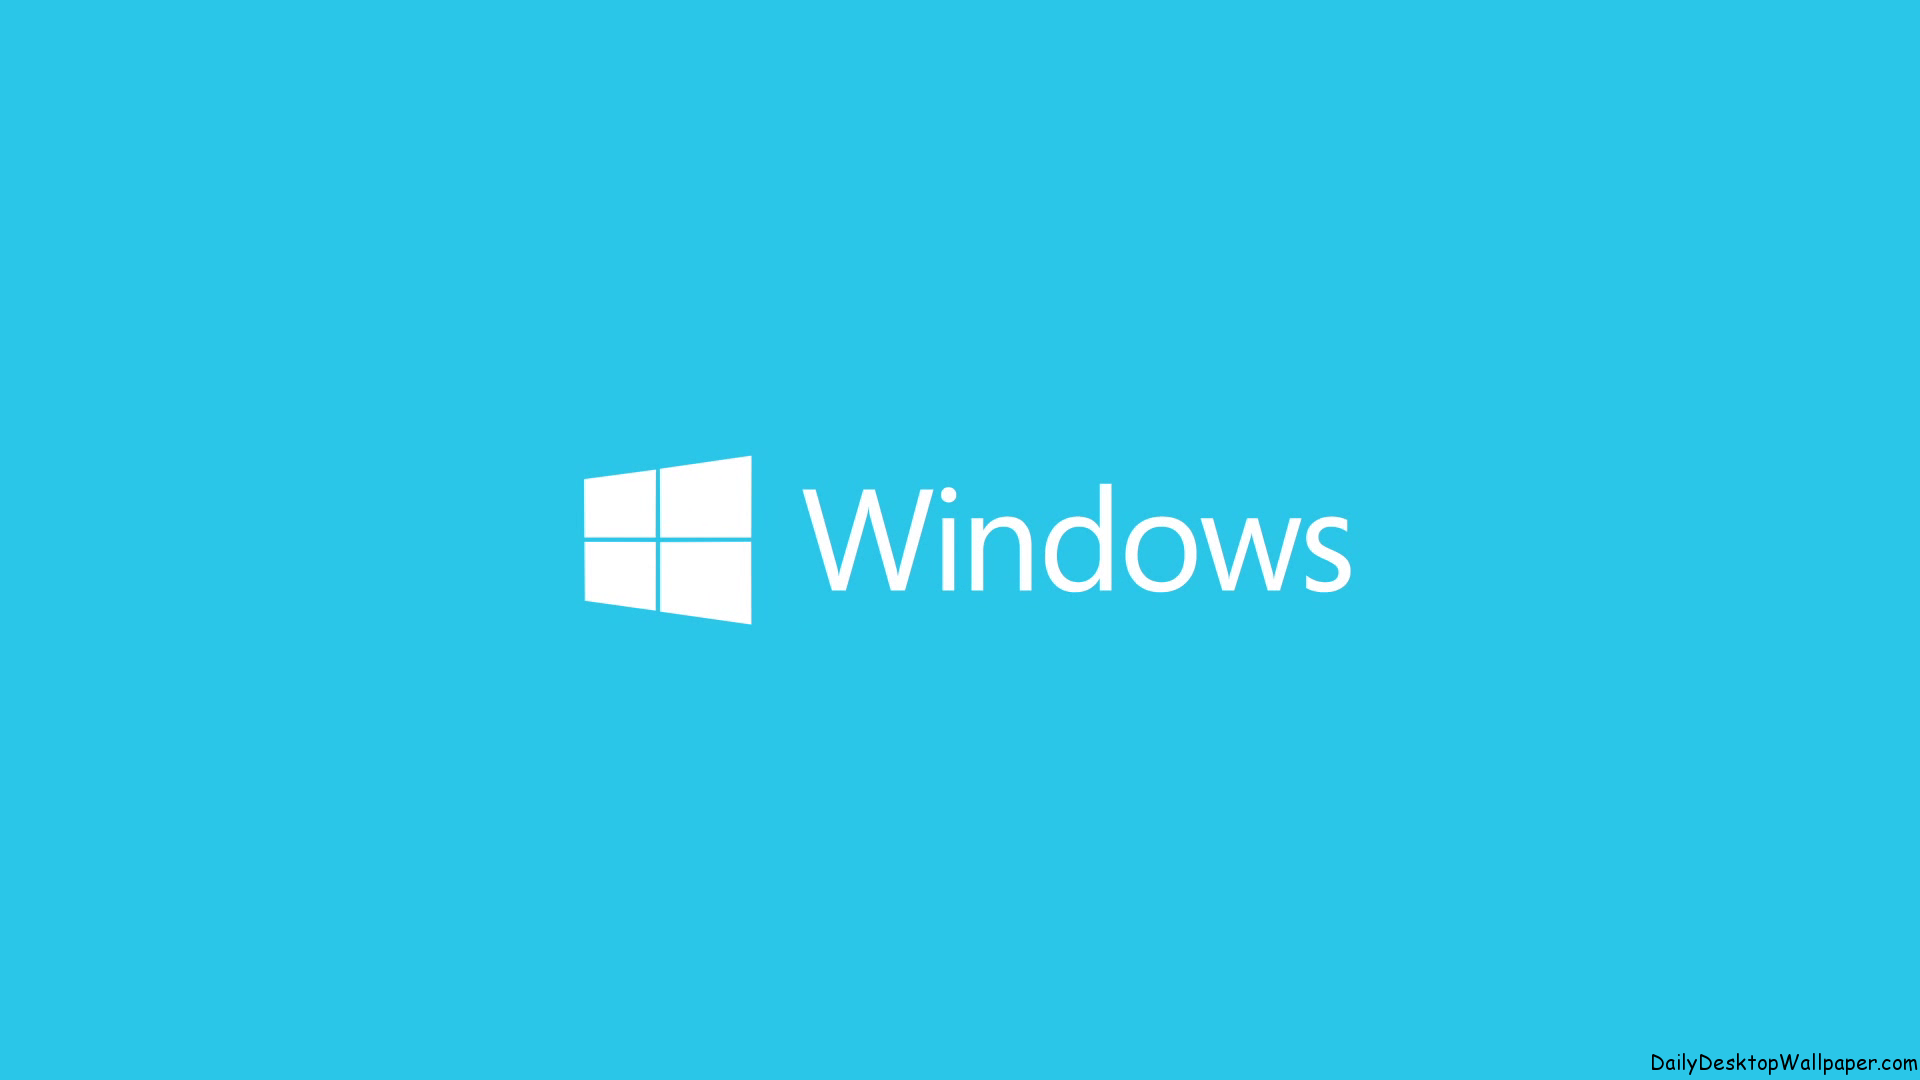 Watching windows hd wallpapers for Windows windows